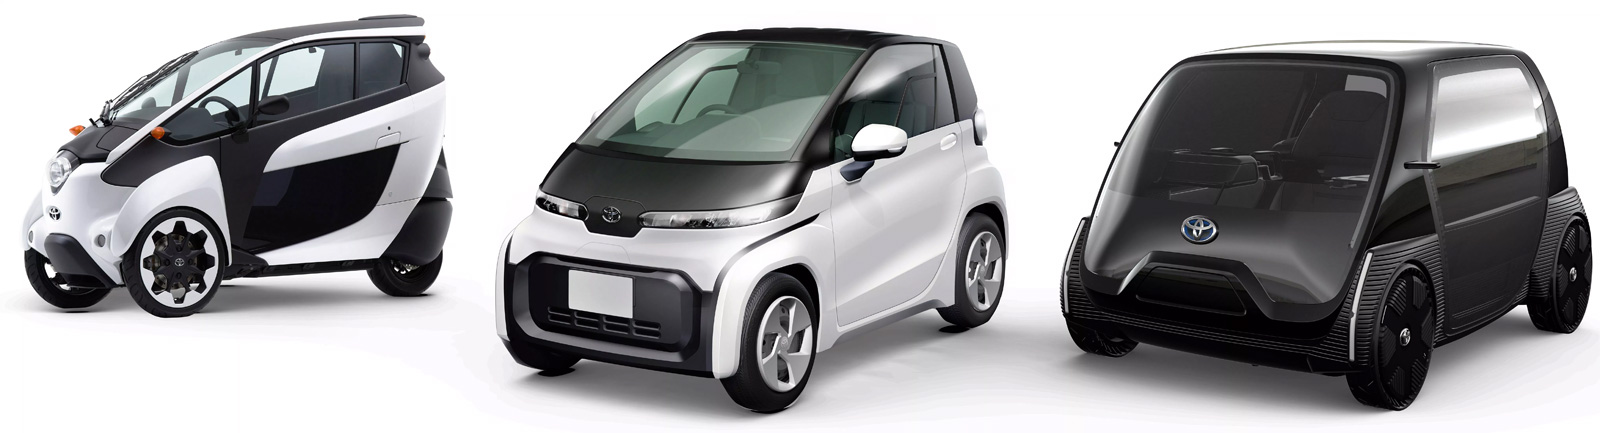 Japan's Ministry of transport tests the Toyota i-Road and 18 other ultra-mini EVs in Tokyo